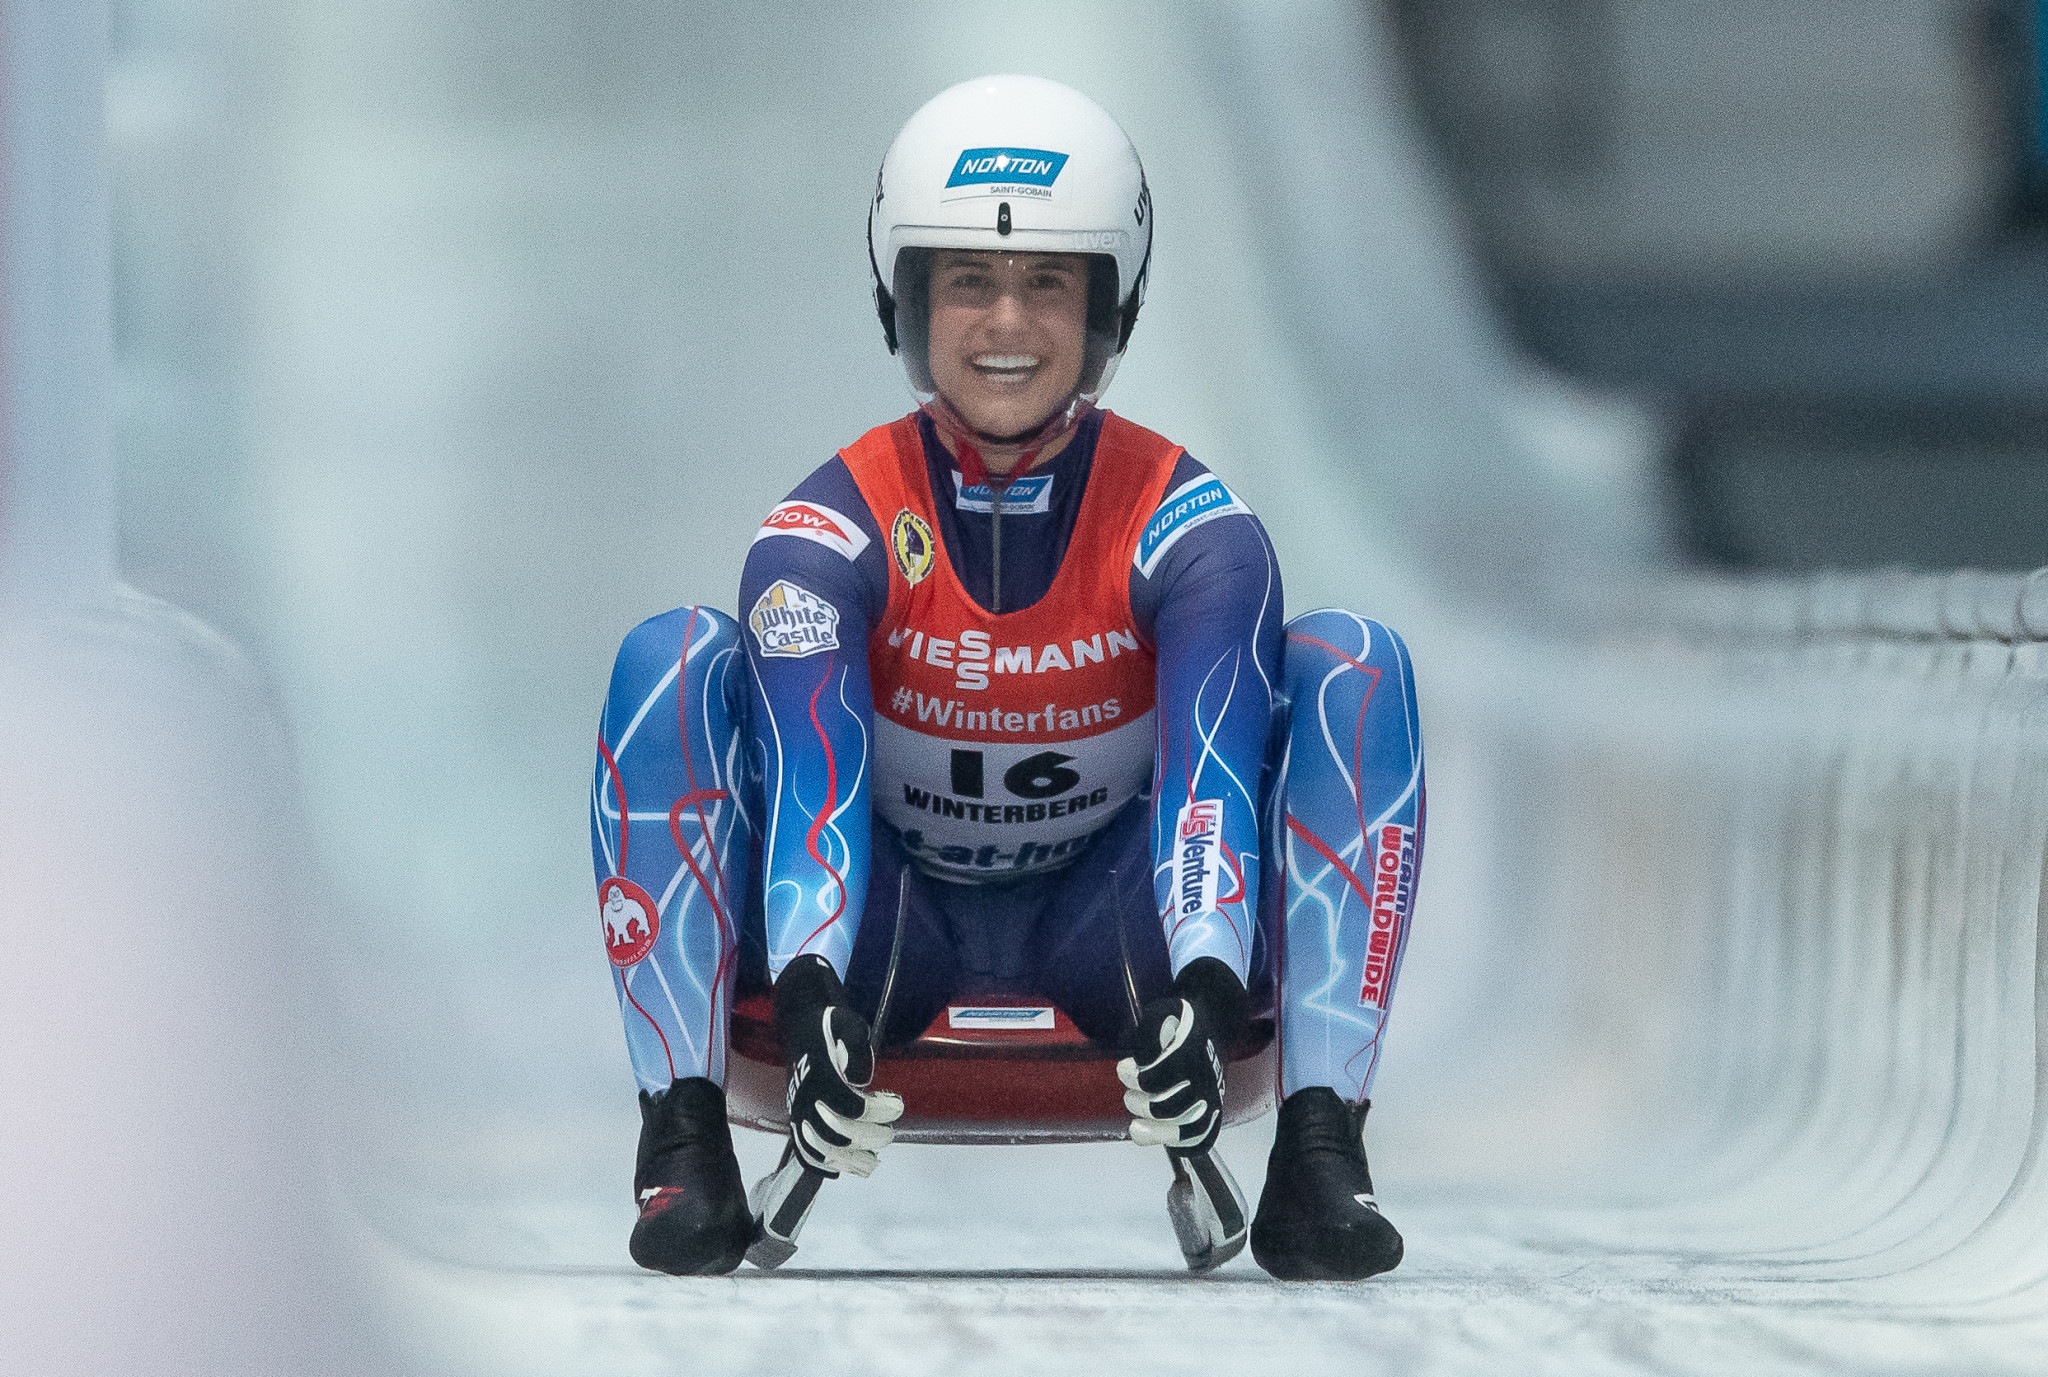 Sweeney and Mazdzer receive USA Luge awards